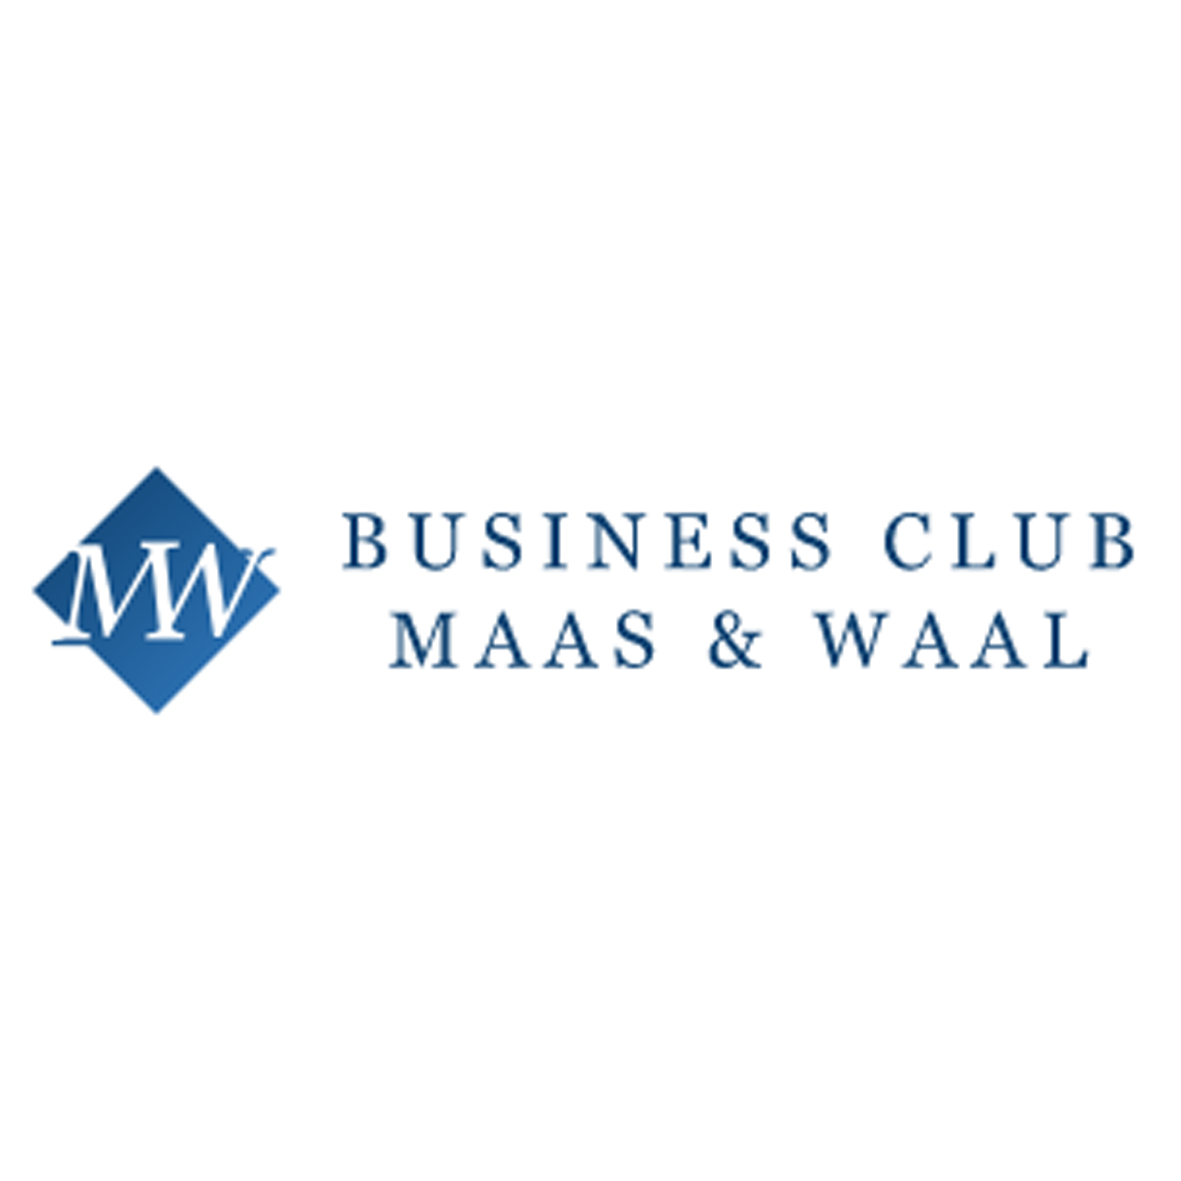 Business Club Maas & Waal